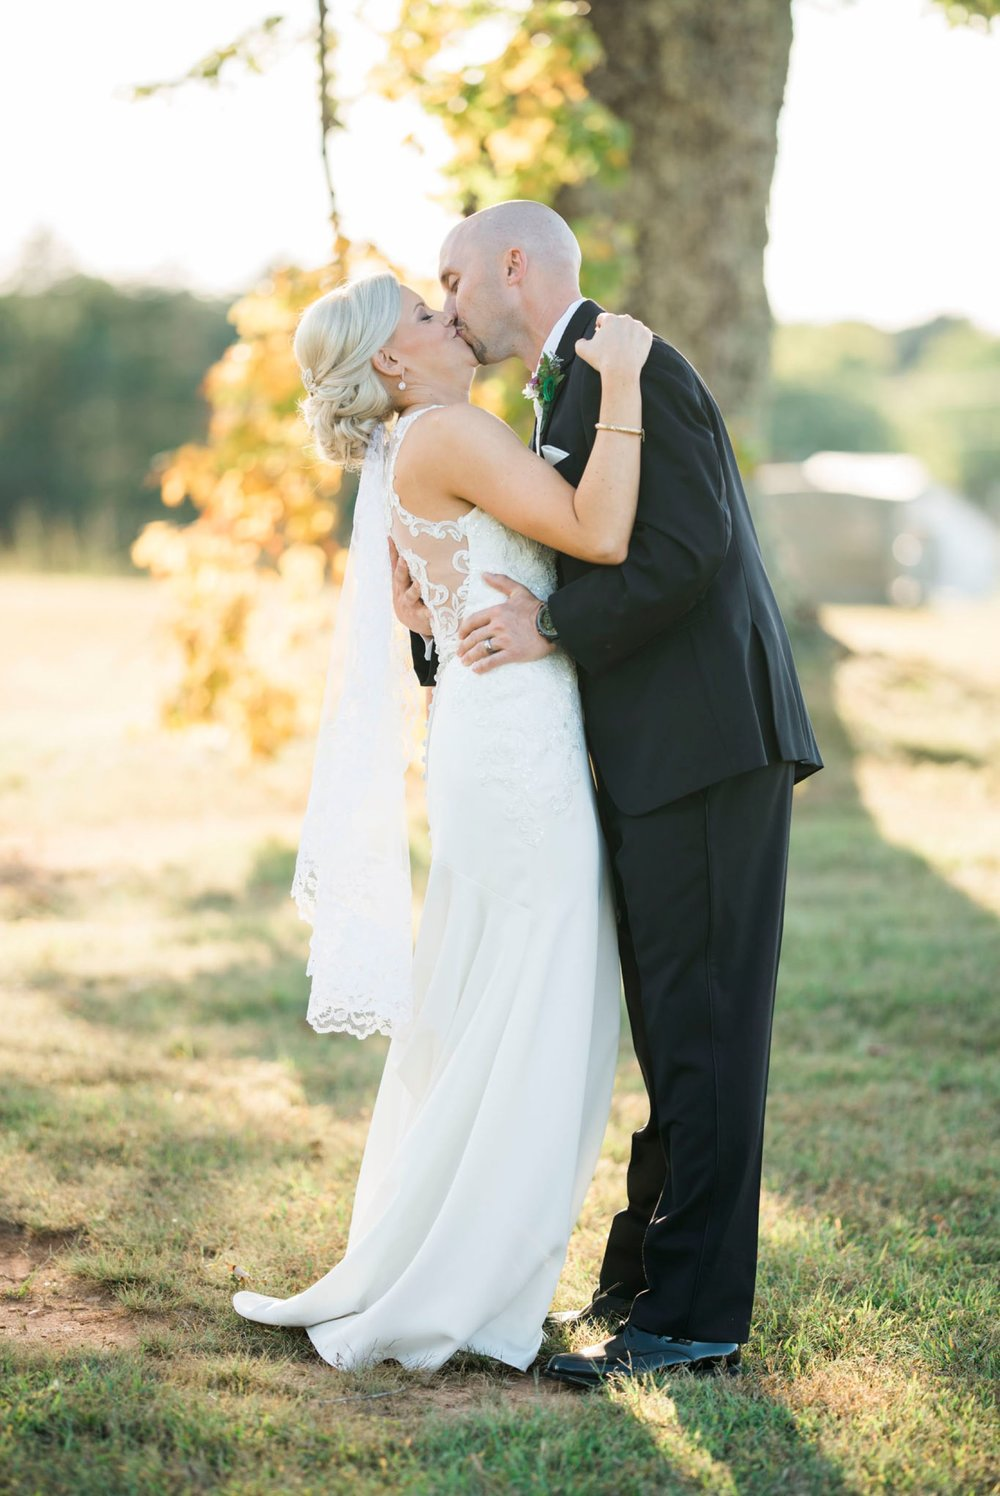 TheMillHouse_ChathamVA_WeddingPhotographer_VirginiaWeddingPhotographer_9.jpg 99.jpg